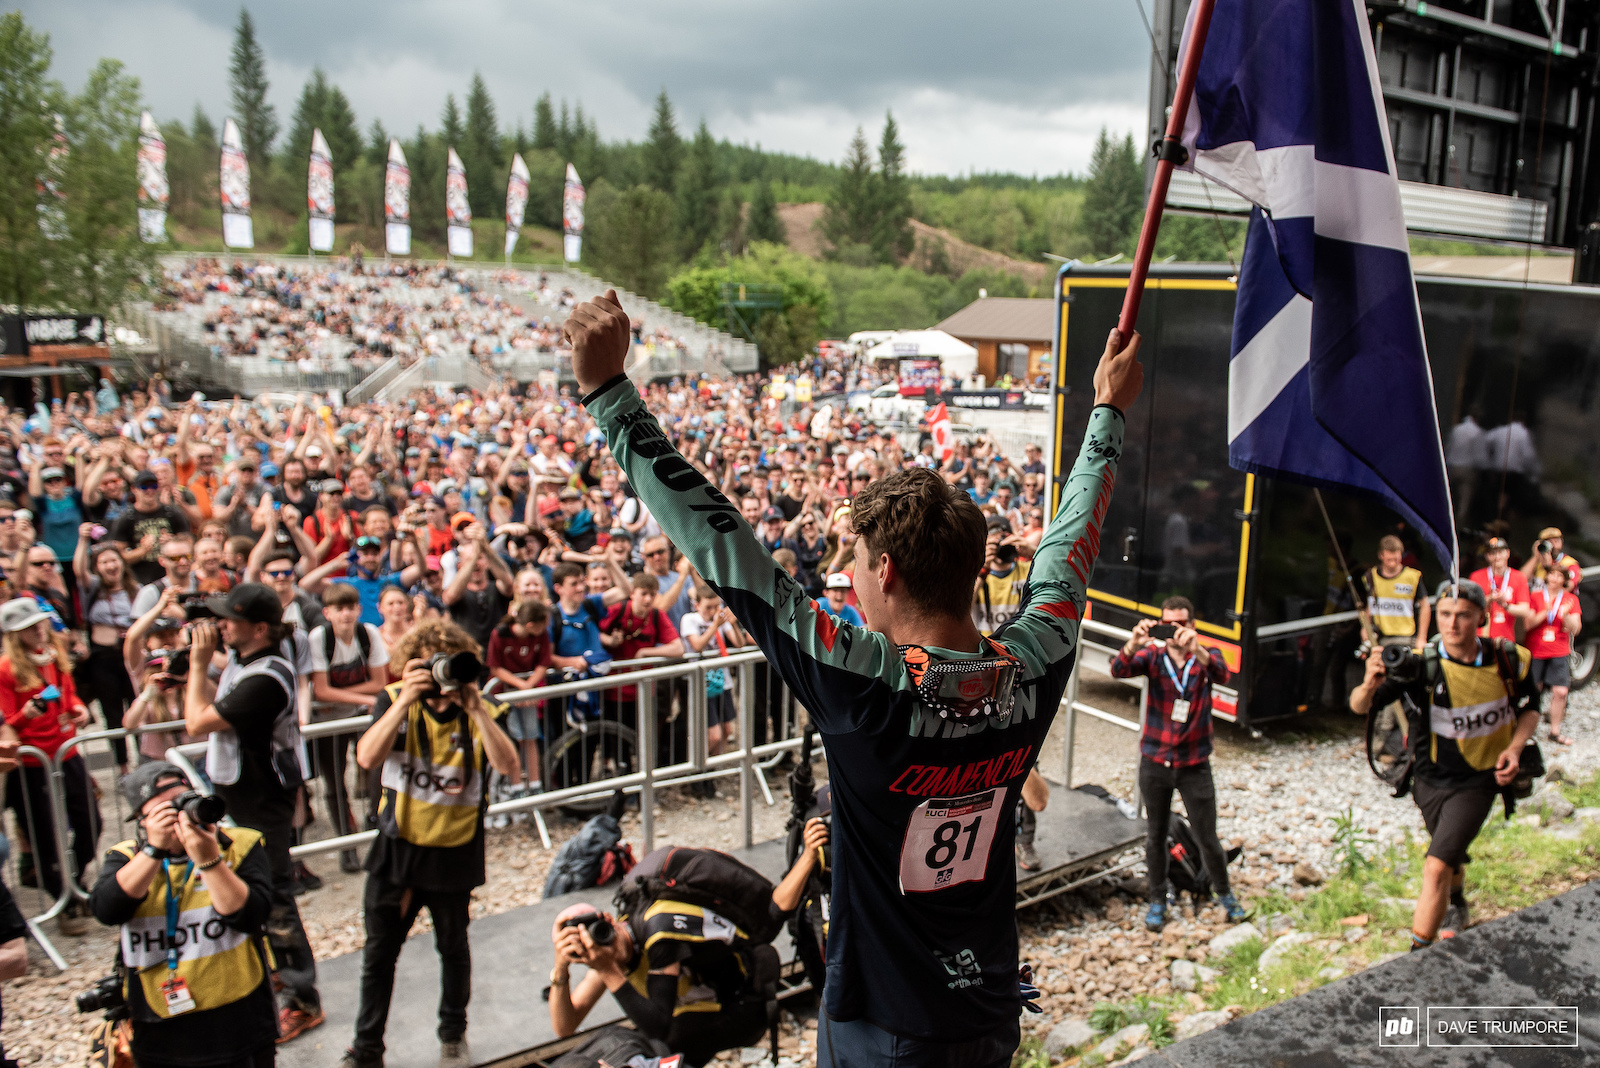 Reece Wilson became the first Scotsman to climb onto a World Cup podium and he did it with style in front of his family and friends.